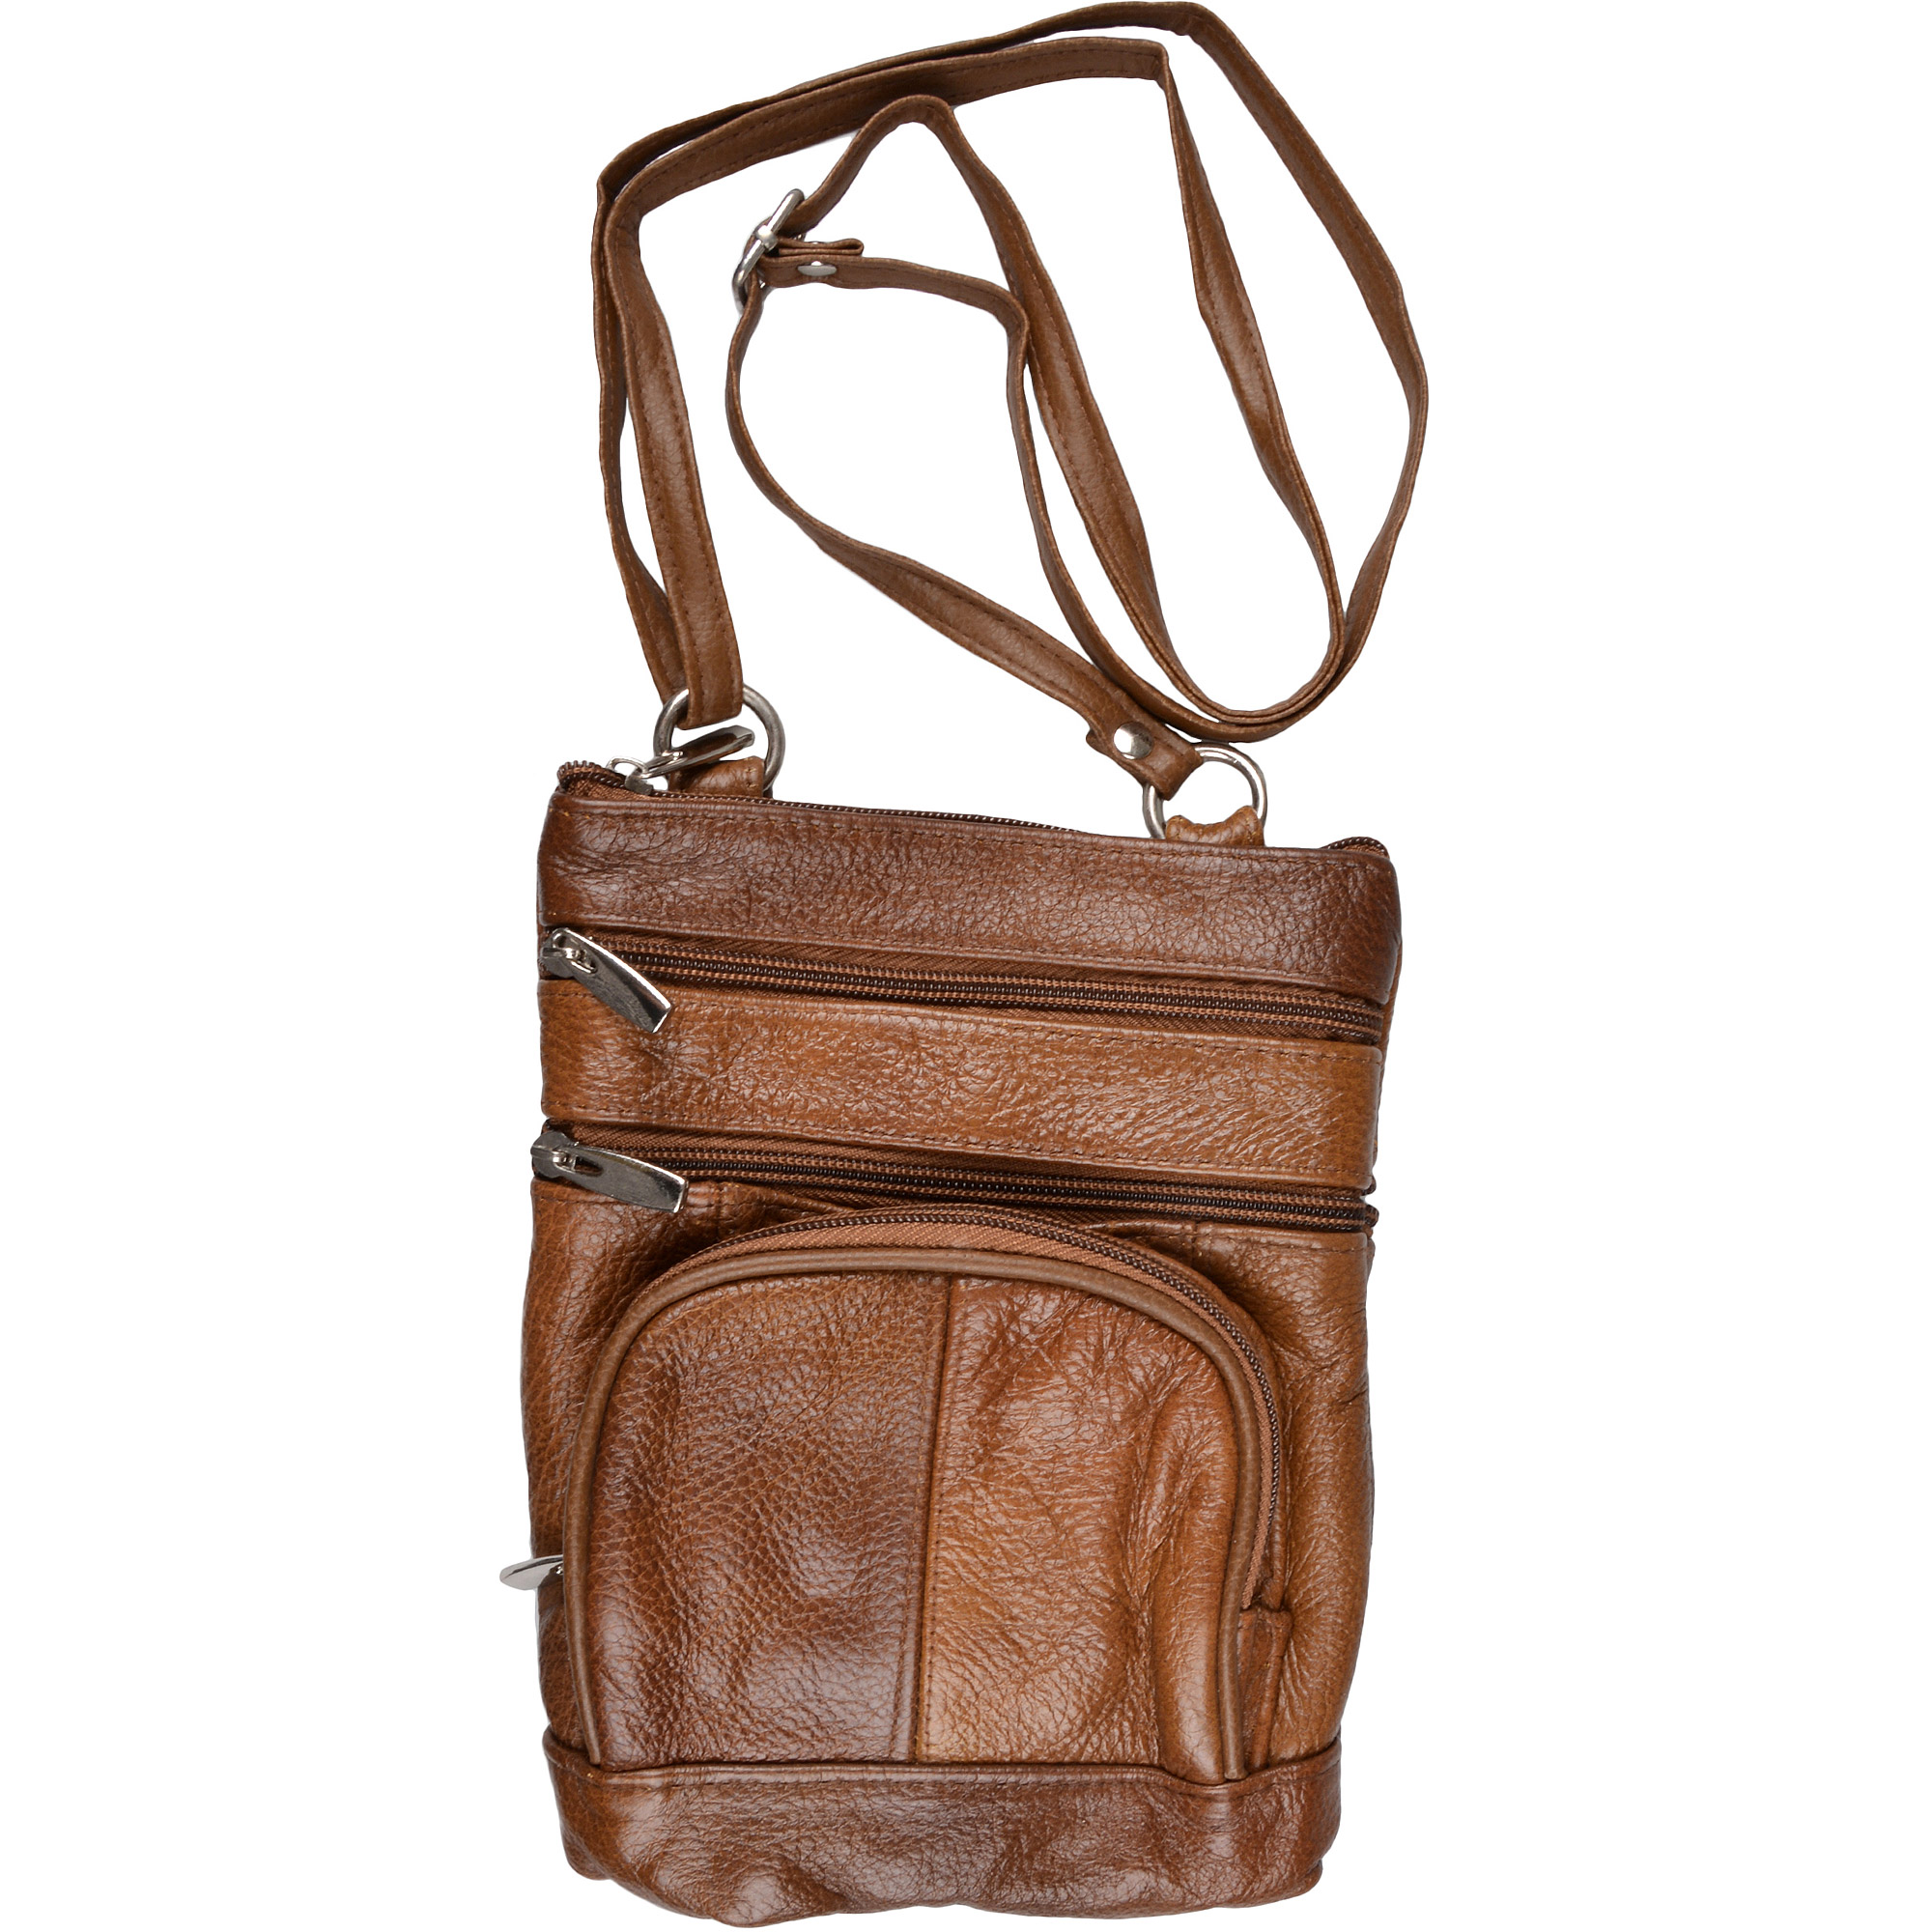 Brinley Co. Genuine Leather Multi-pocket Crossbody Bag